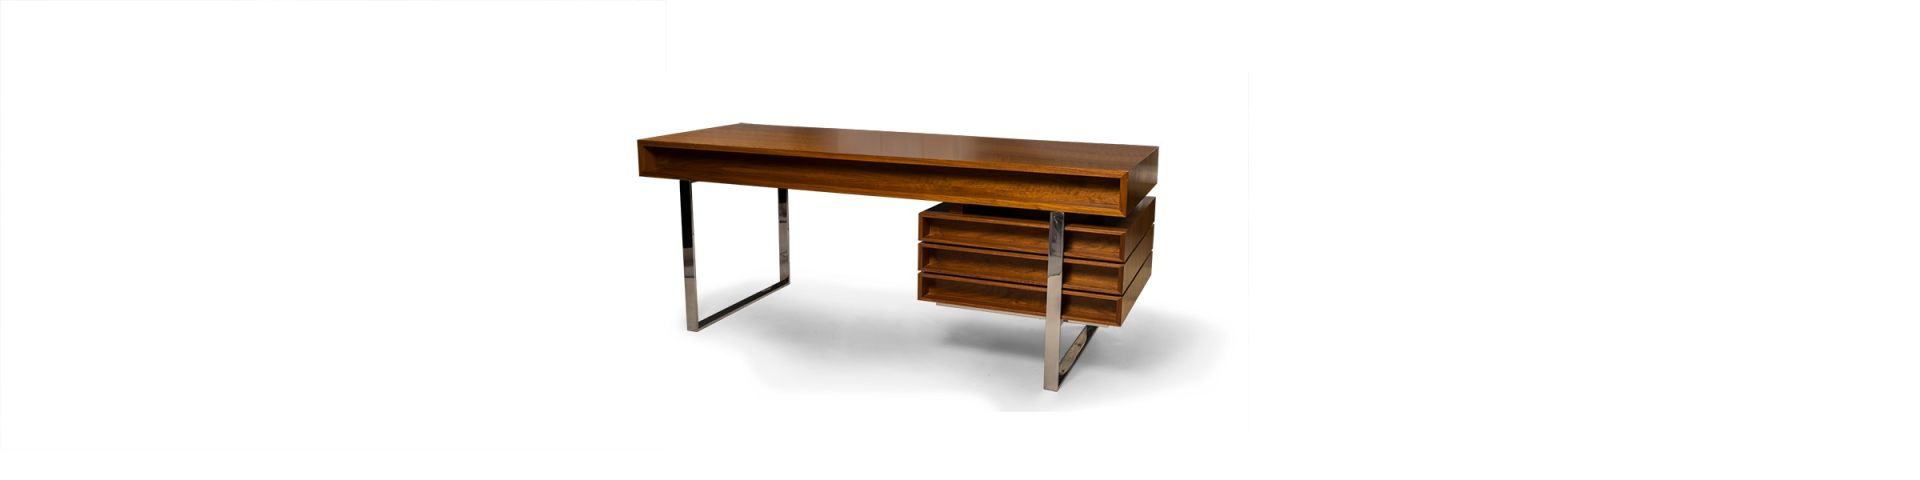 Modern office furniture for contemporary office design cliffyoung